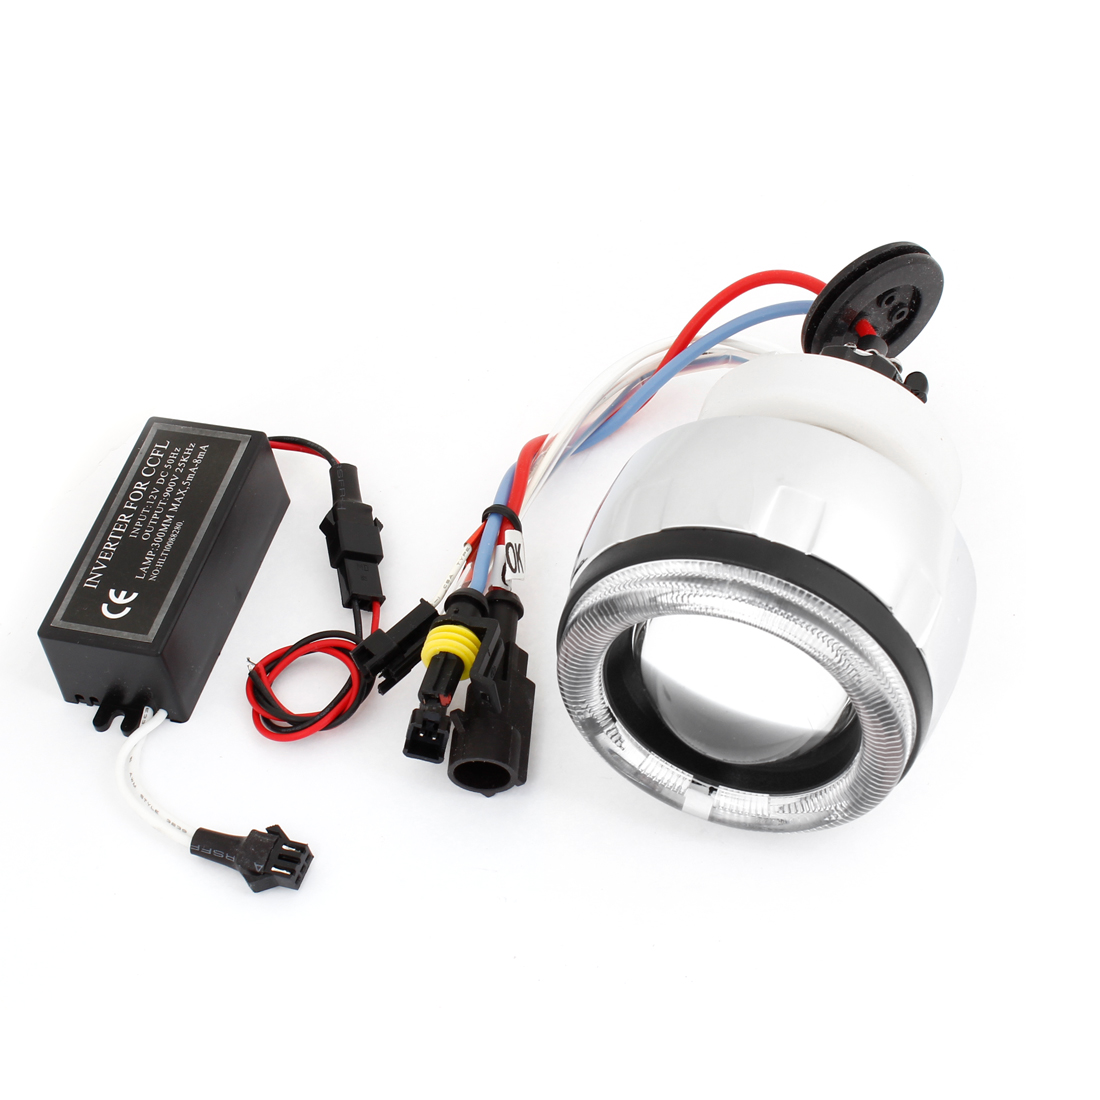 DC 12V 3W Motorcycle White HID Xenon Projector Lens Lamp Conversion Kit